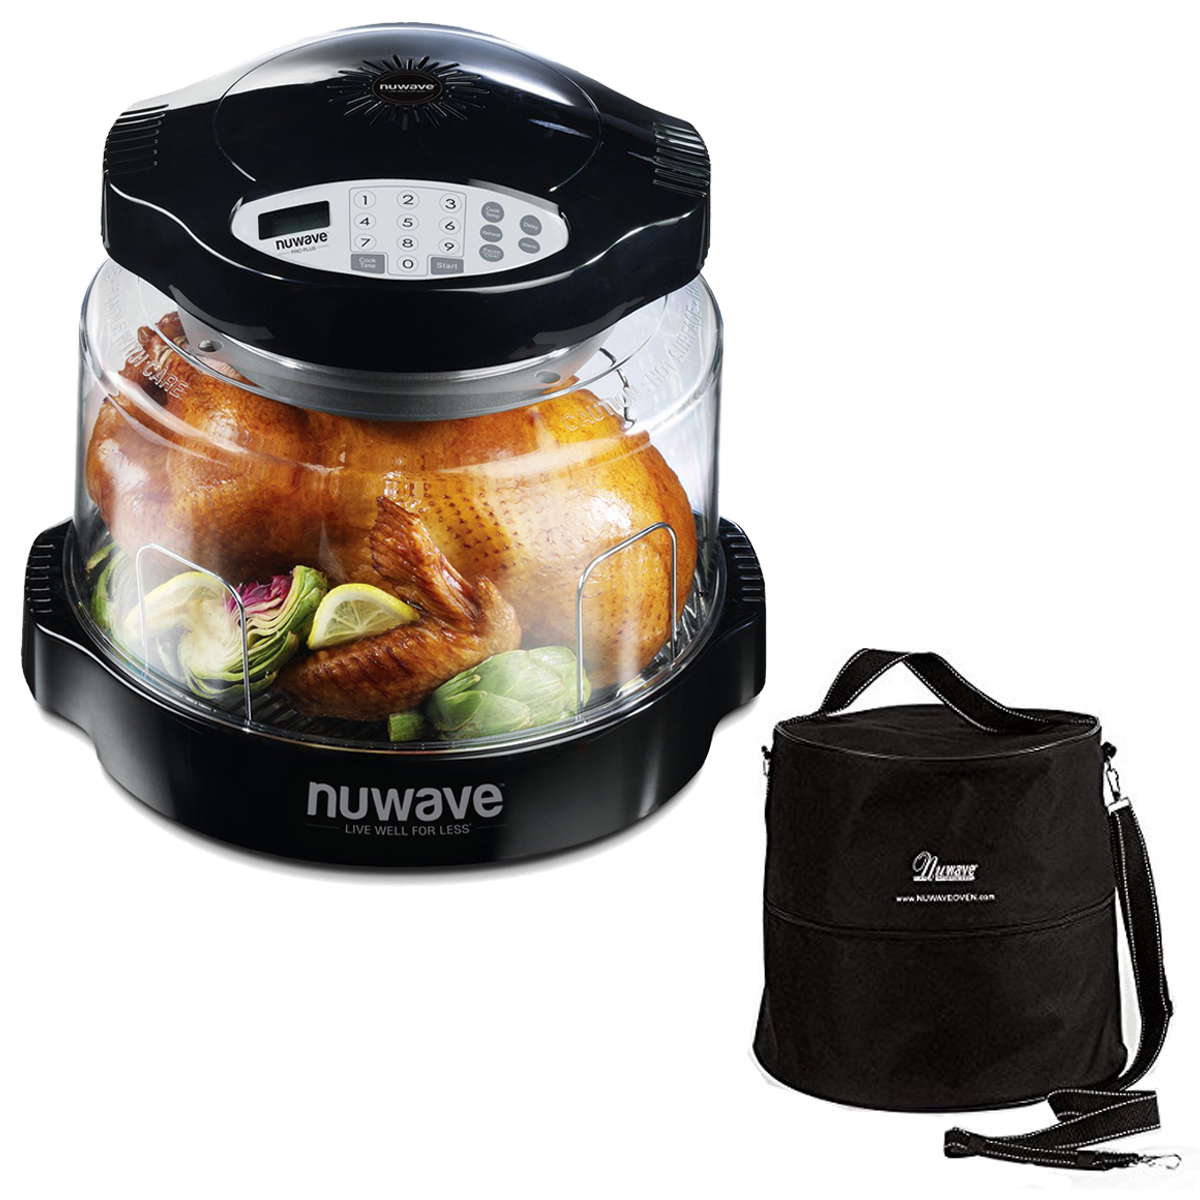 NuWave Oven Pro Plus with Black Digital Panel & Oven Carrying Case Customized